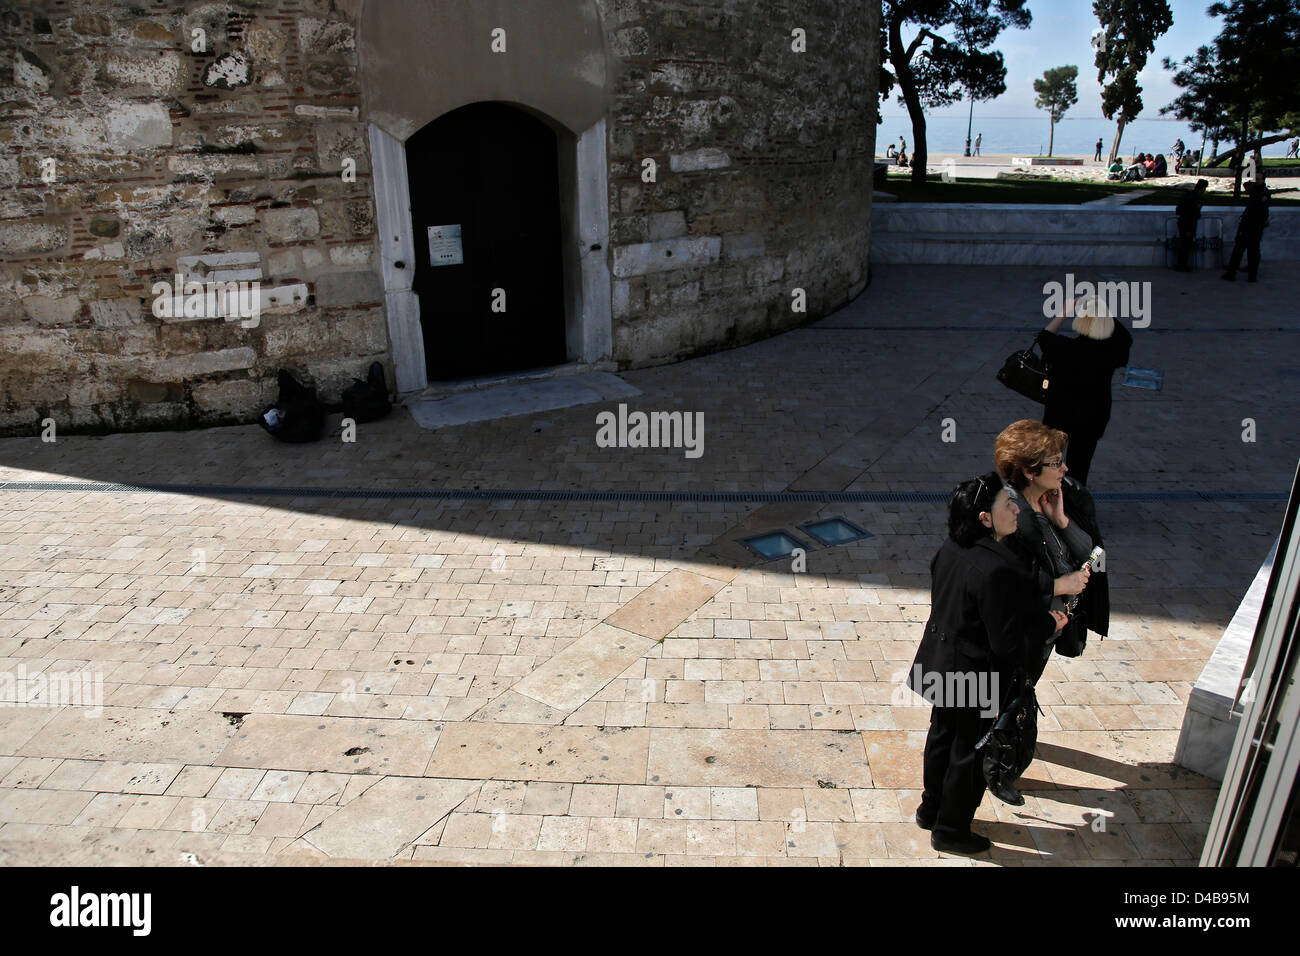 Thessaloniki, Greece. 11th March, 2013. Tourist outside of the closed White Tower, city's landmark in the northern - Stock Image